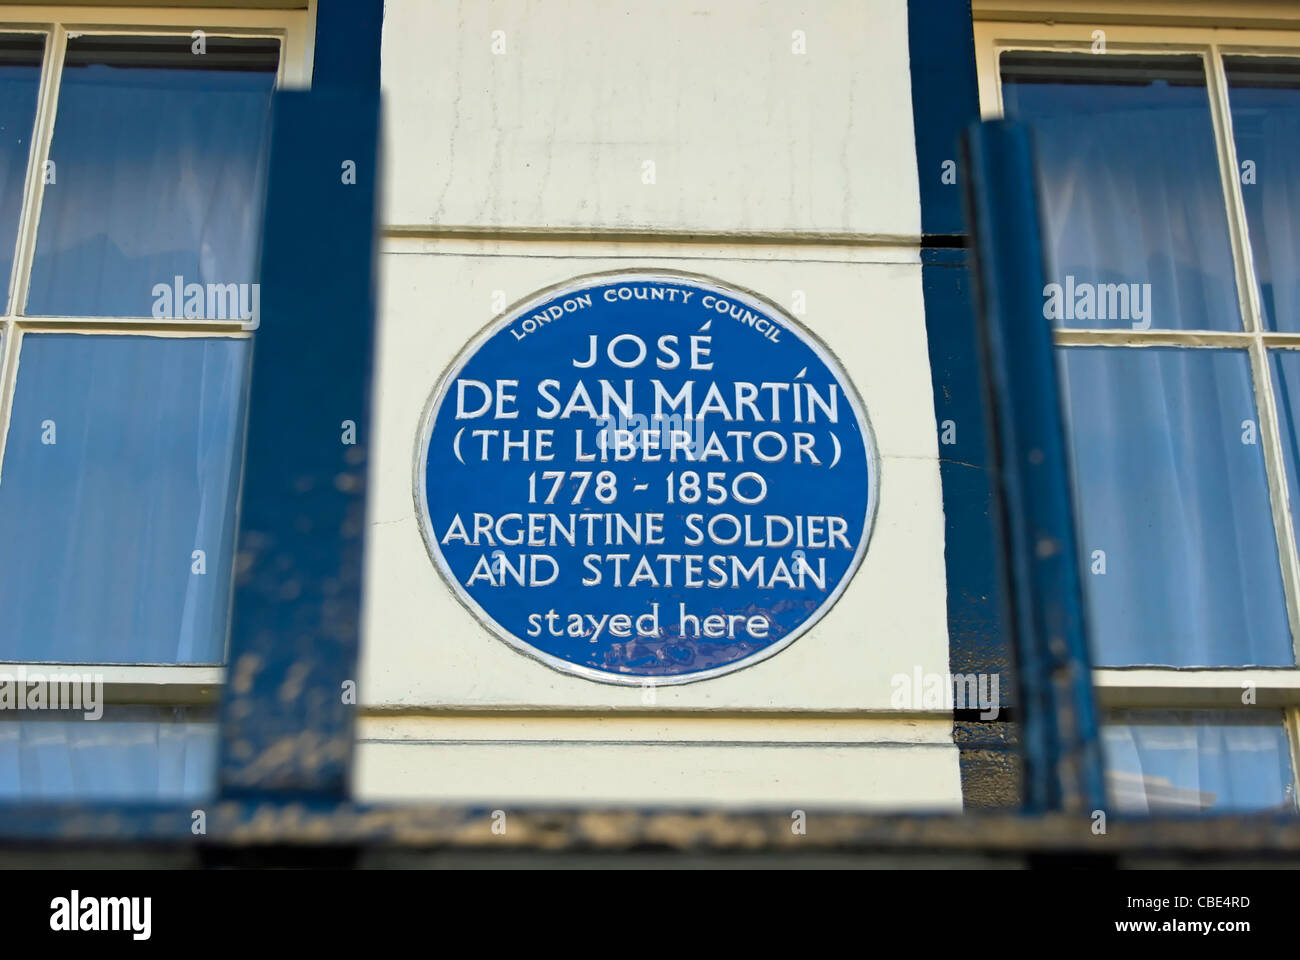 london county council blue plaque marking a home occupied by jose de san martin, the liberator, argentine soldier - Stock Image